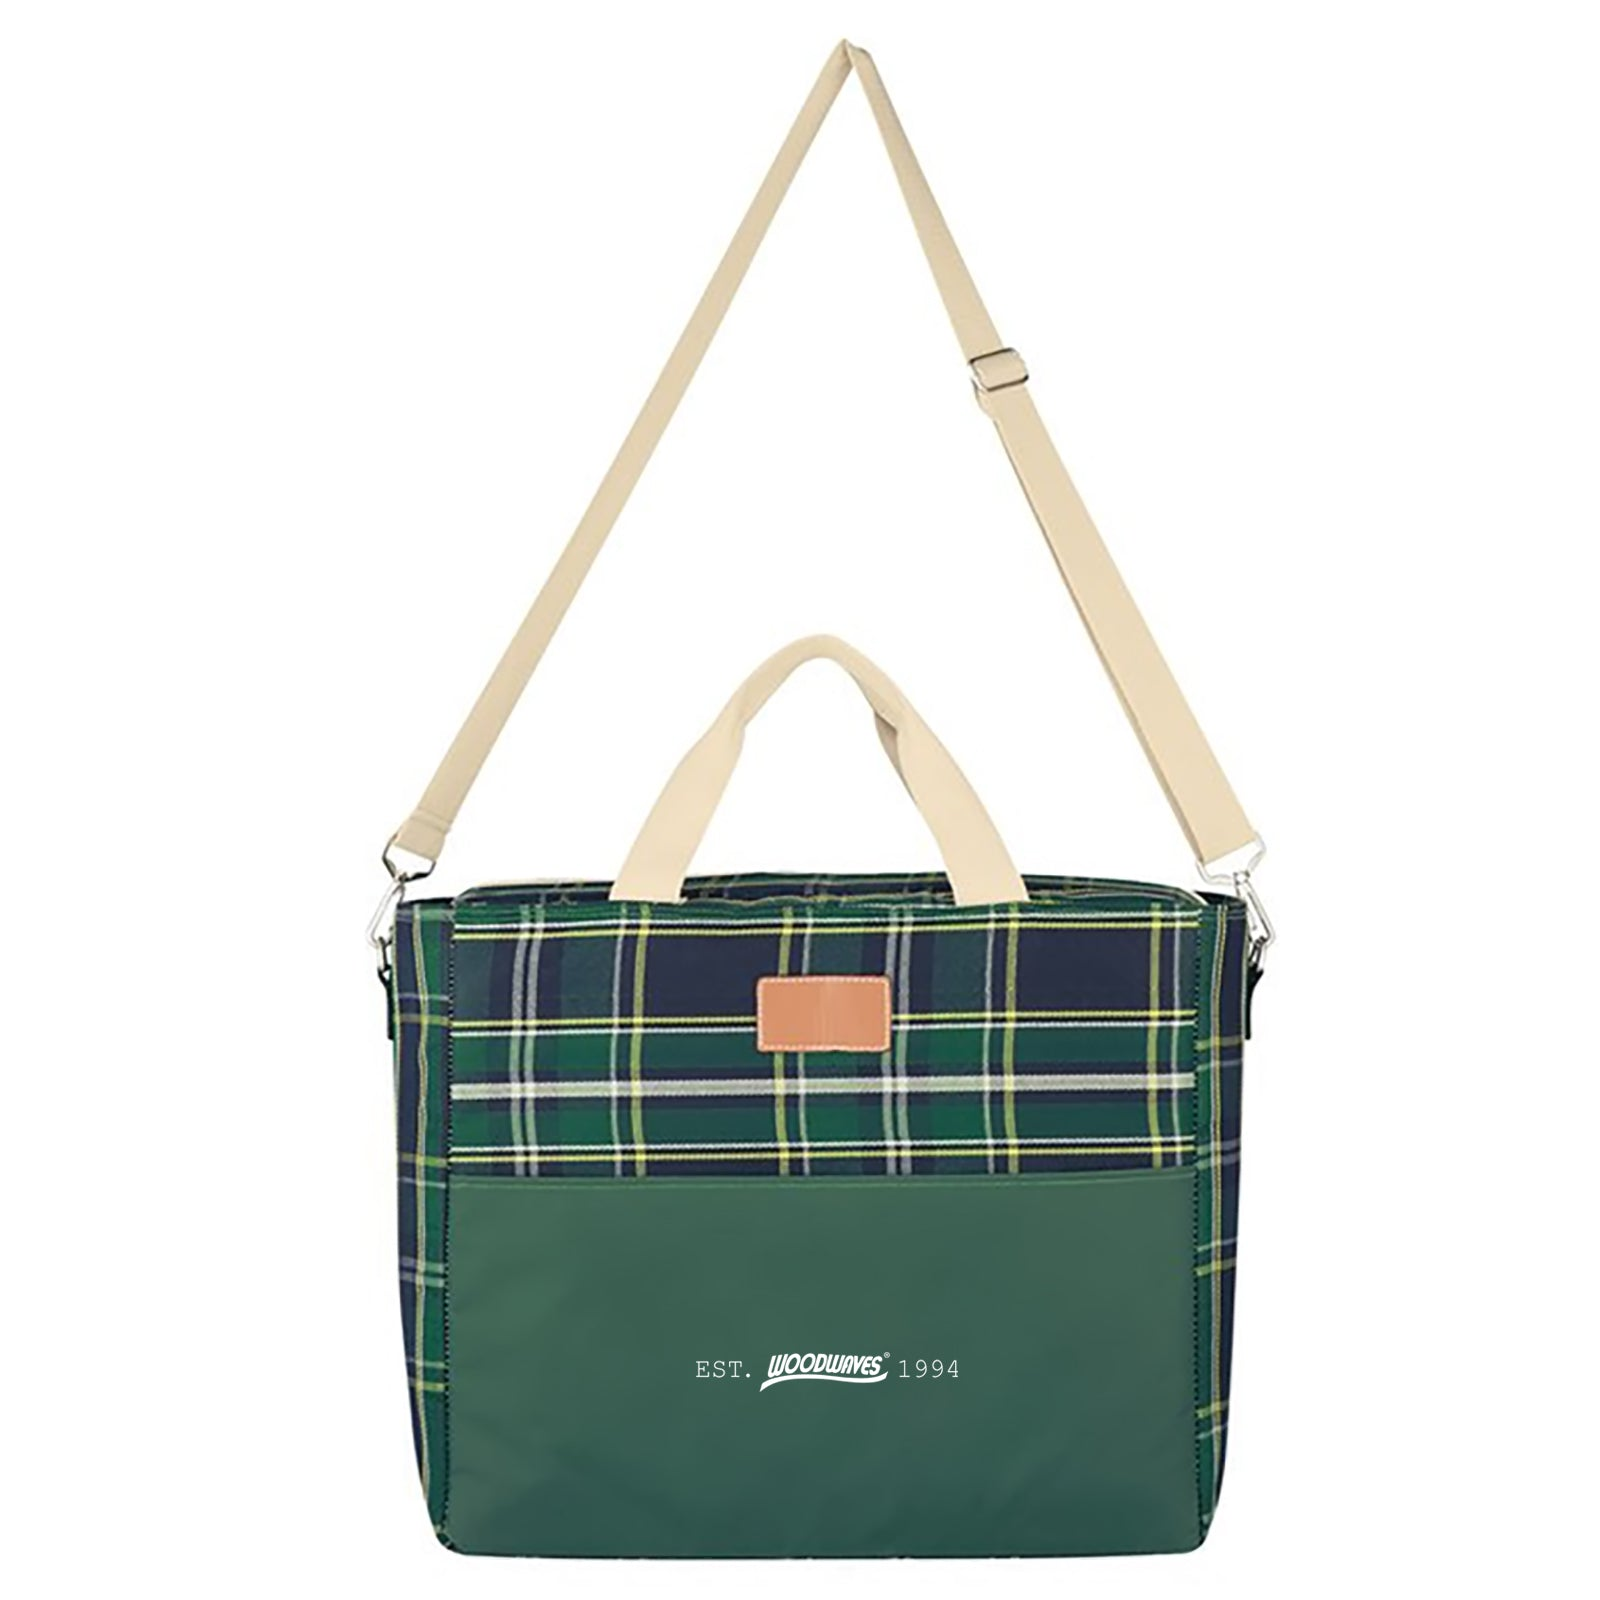 Woodwaves Green Plaid and Tan Insulated Cooler Tote Bag